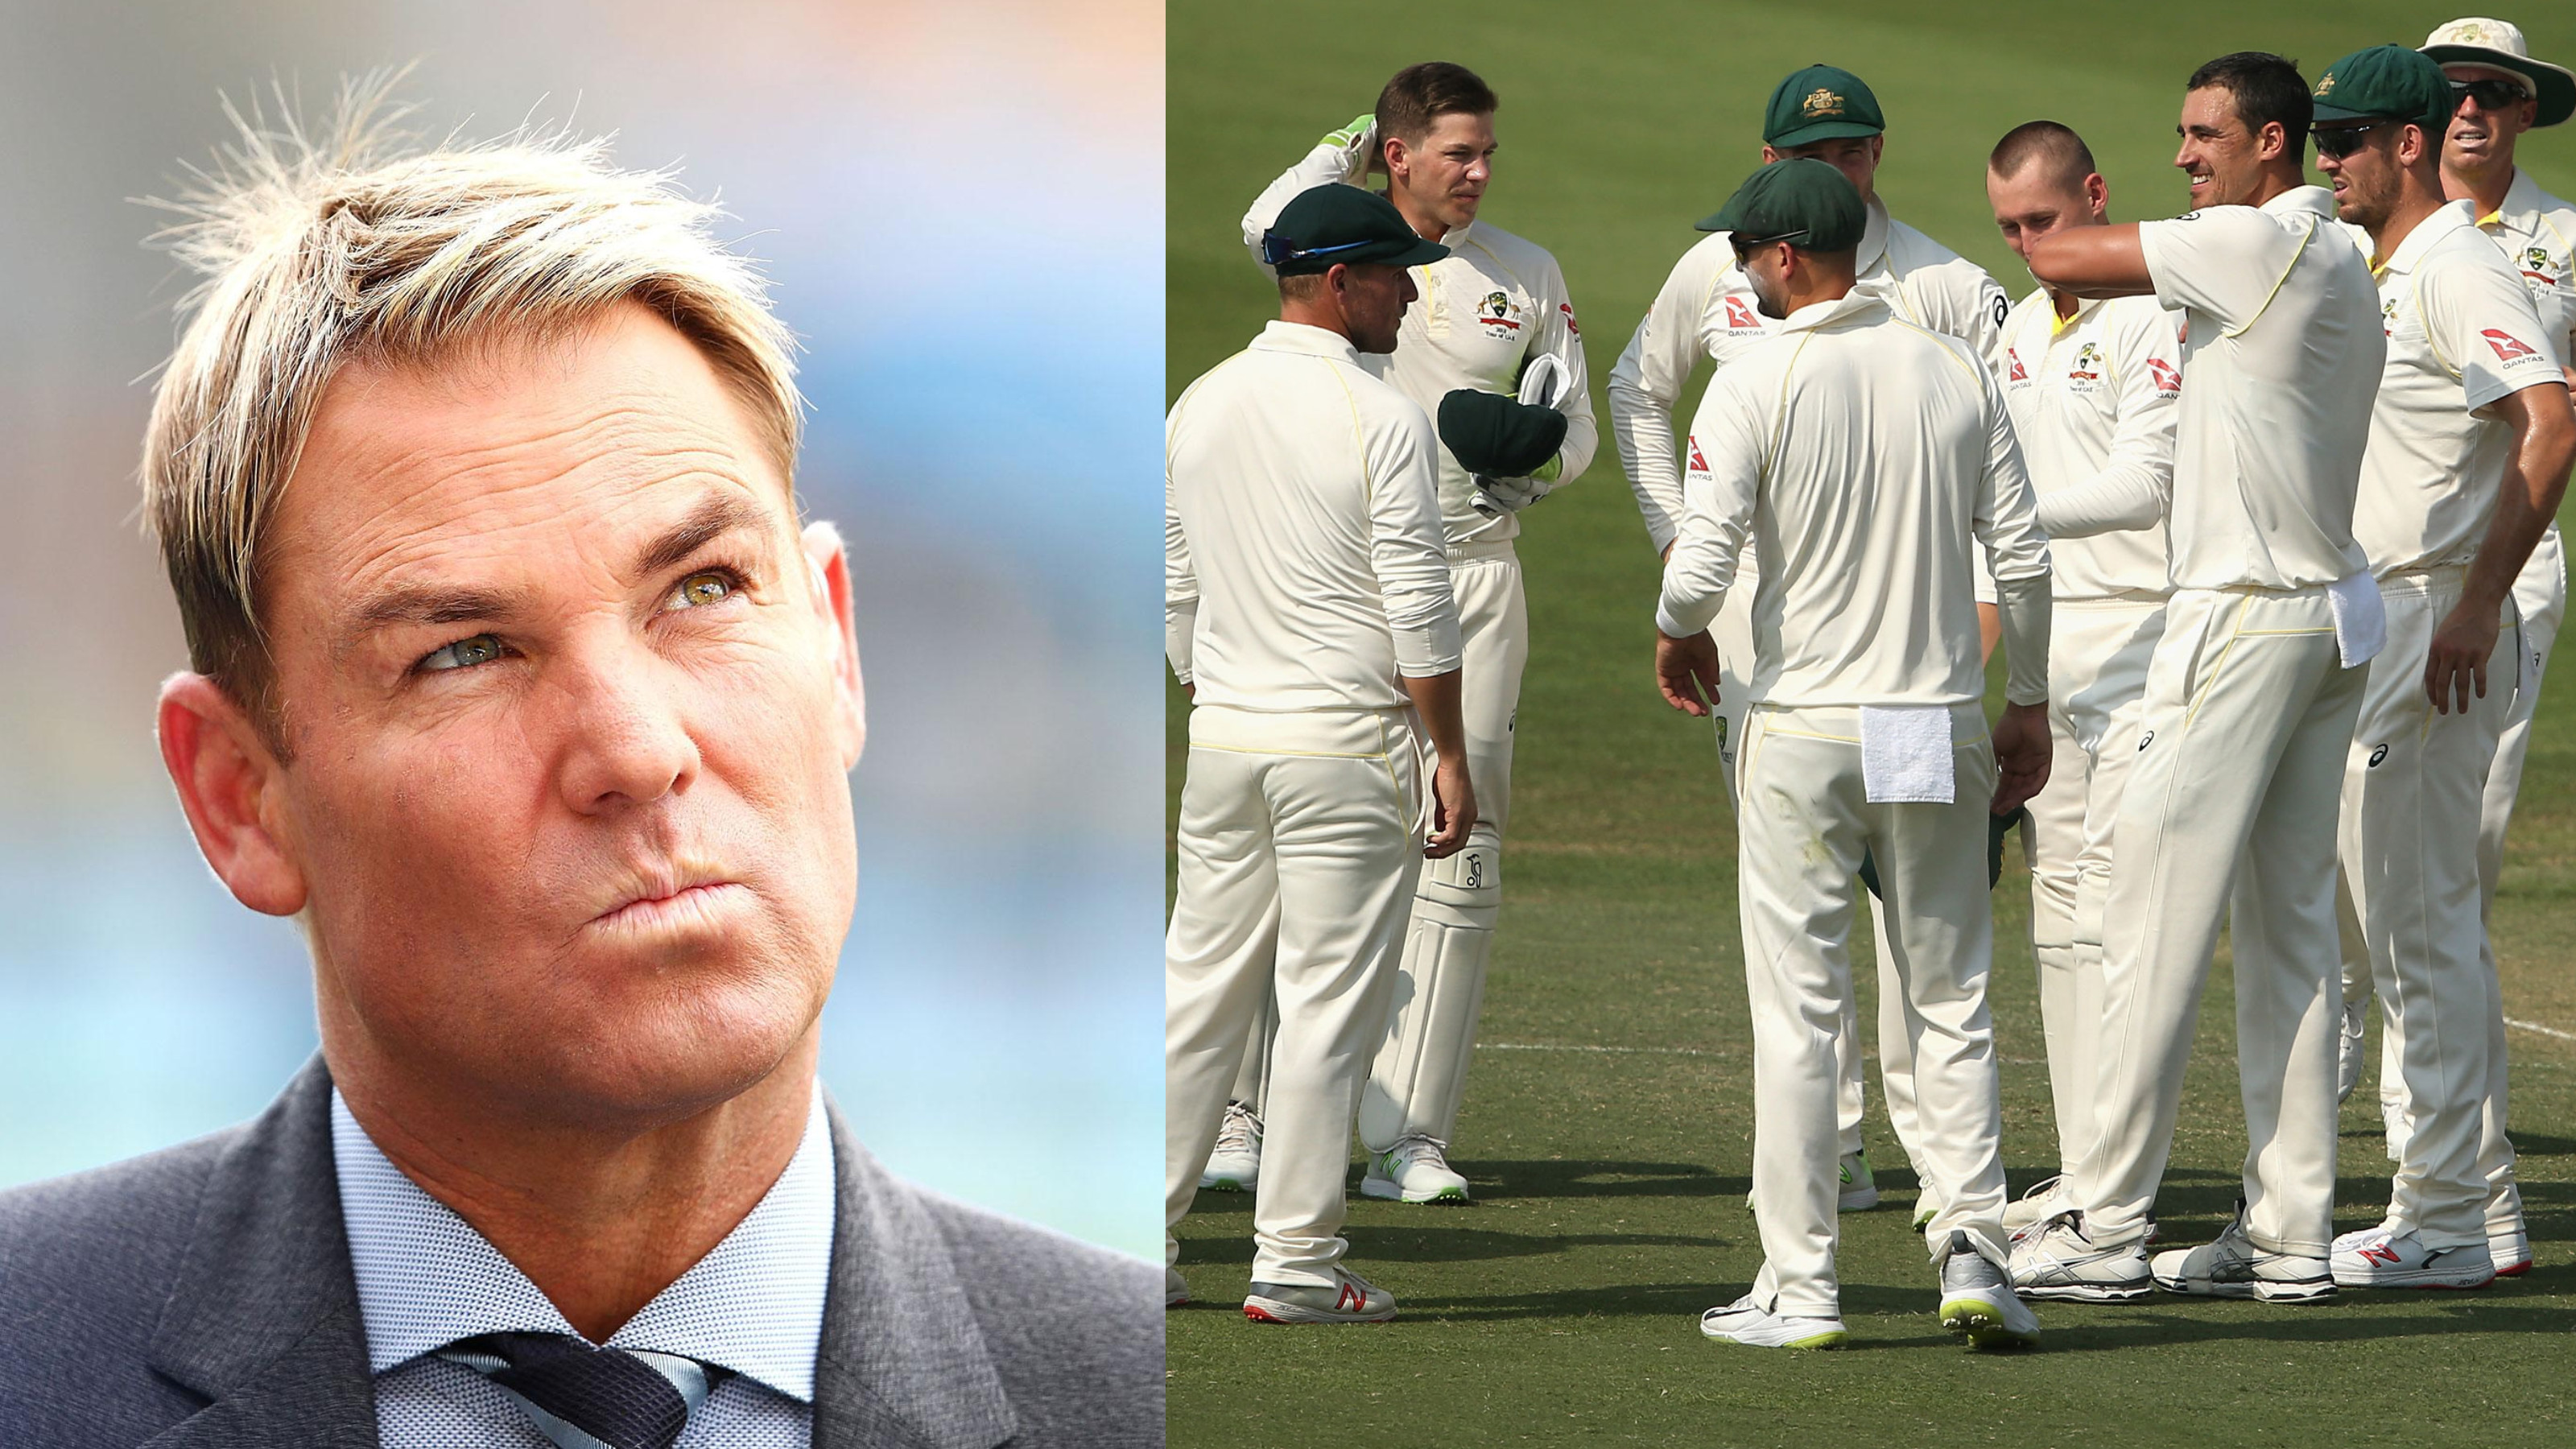 PAK v AUS 2018: Shane Warne criticizes Australian batsmen for their poor show in the final Test